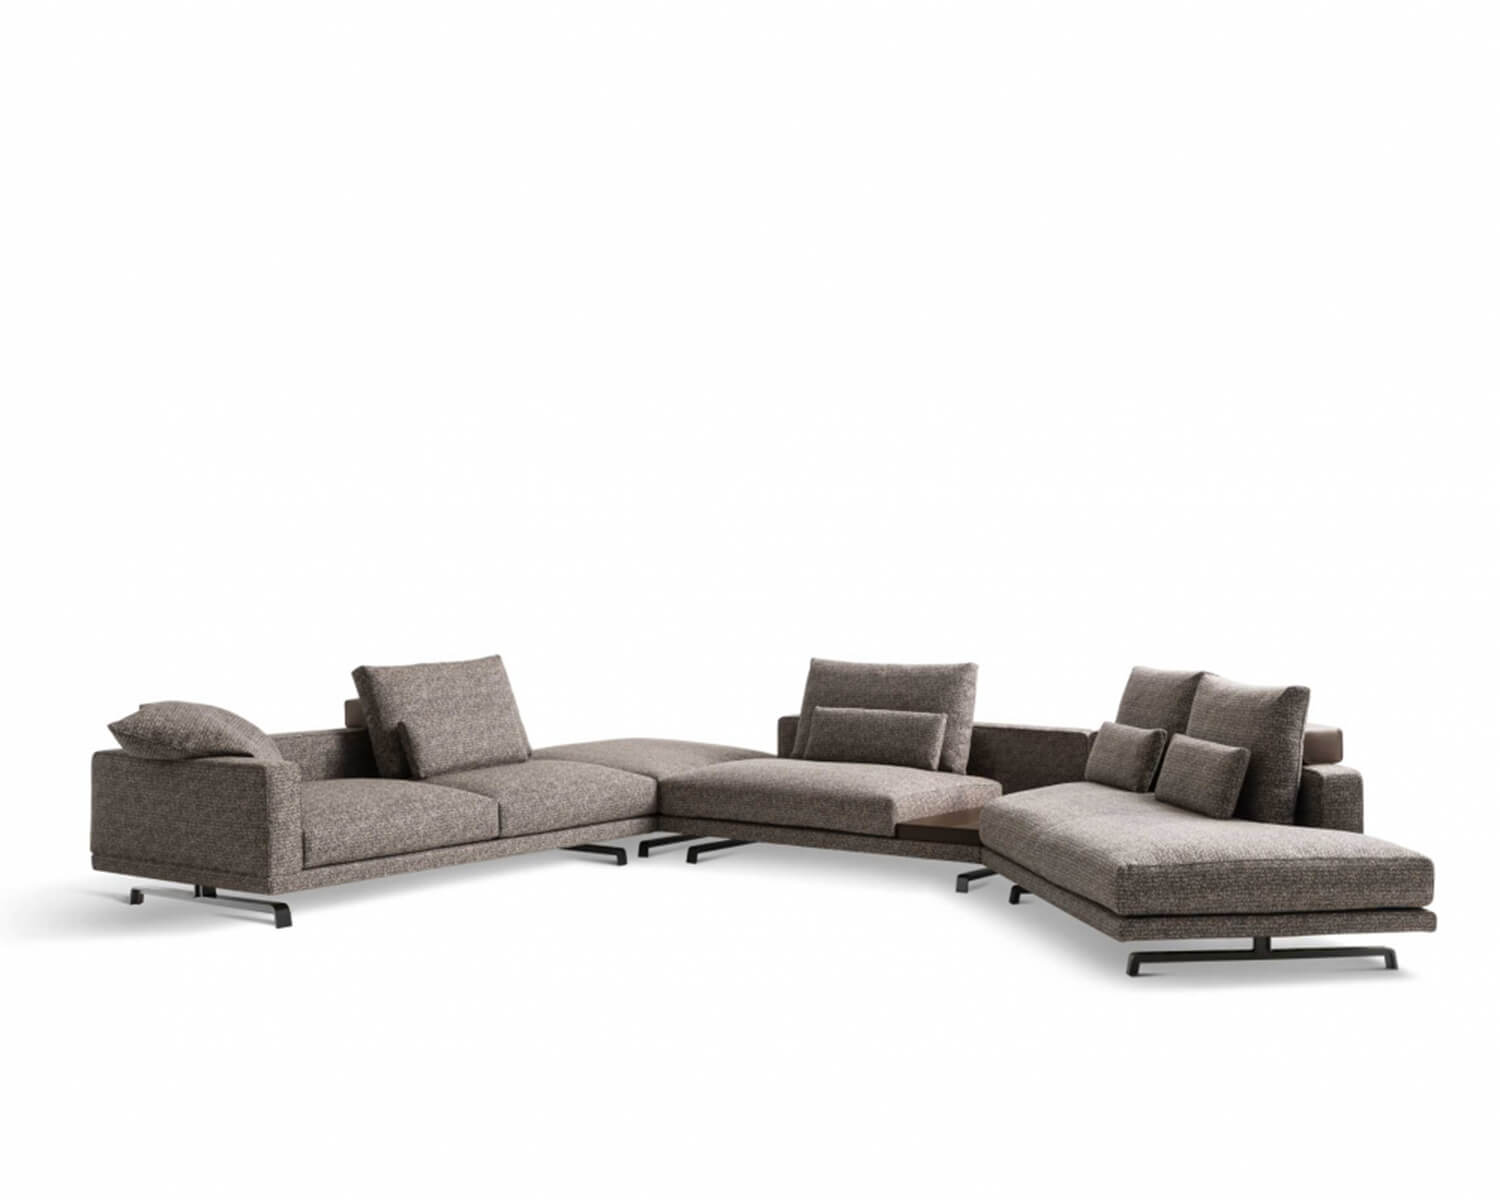 Front view of taupe Octave modular sectional on a white background